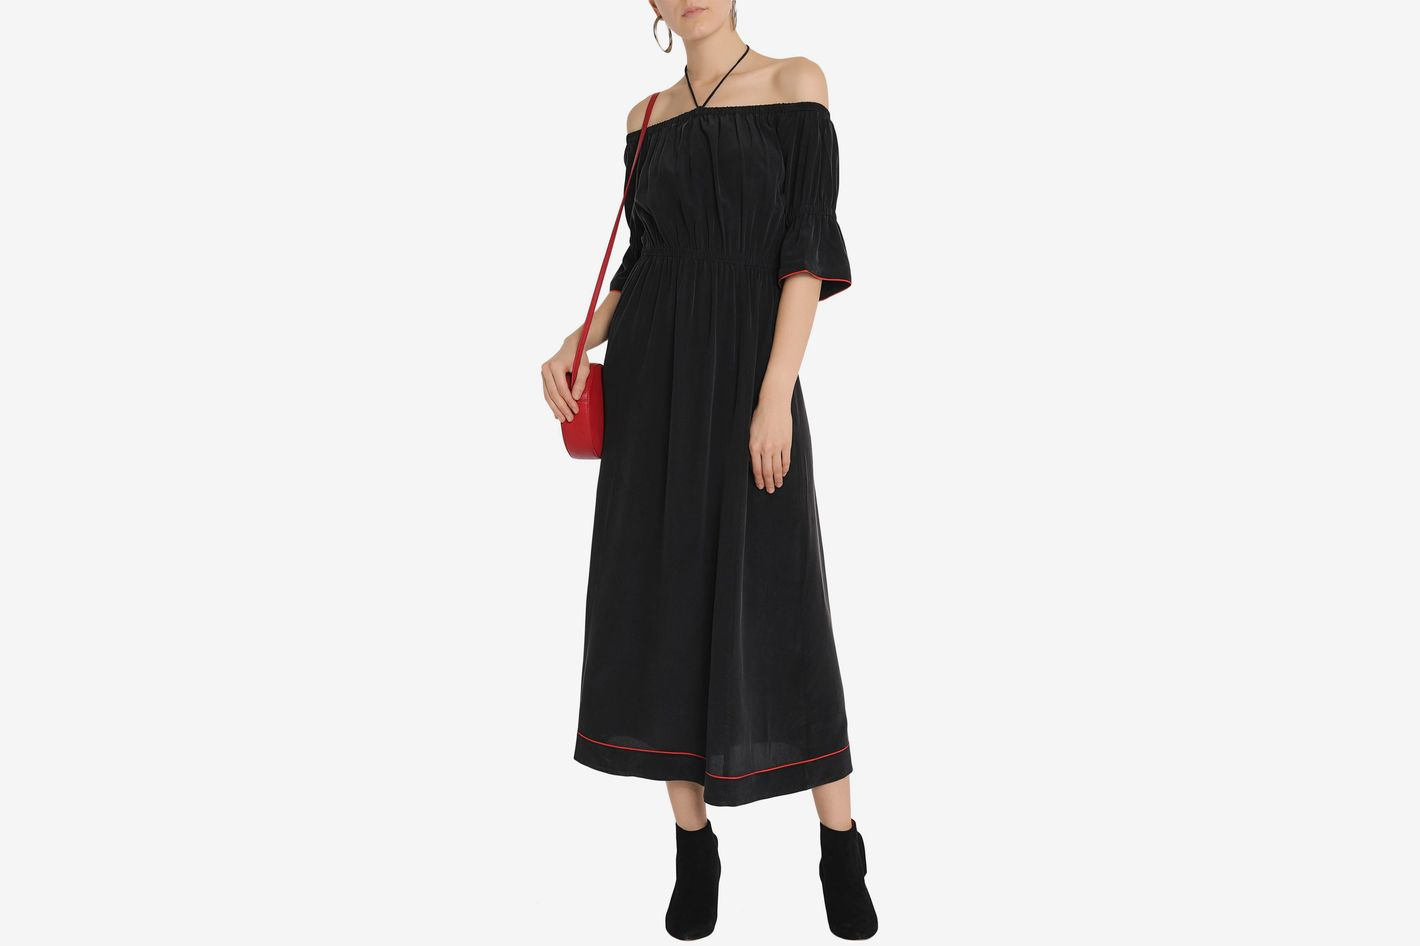 Ganni off-the-shoulder maxi dress